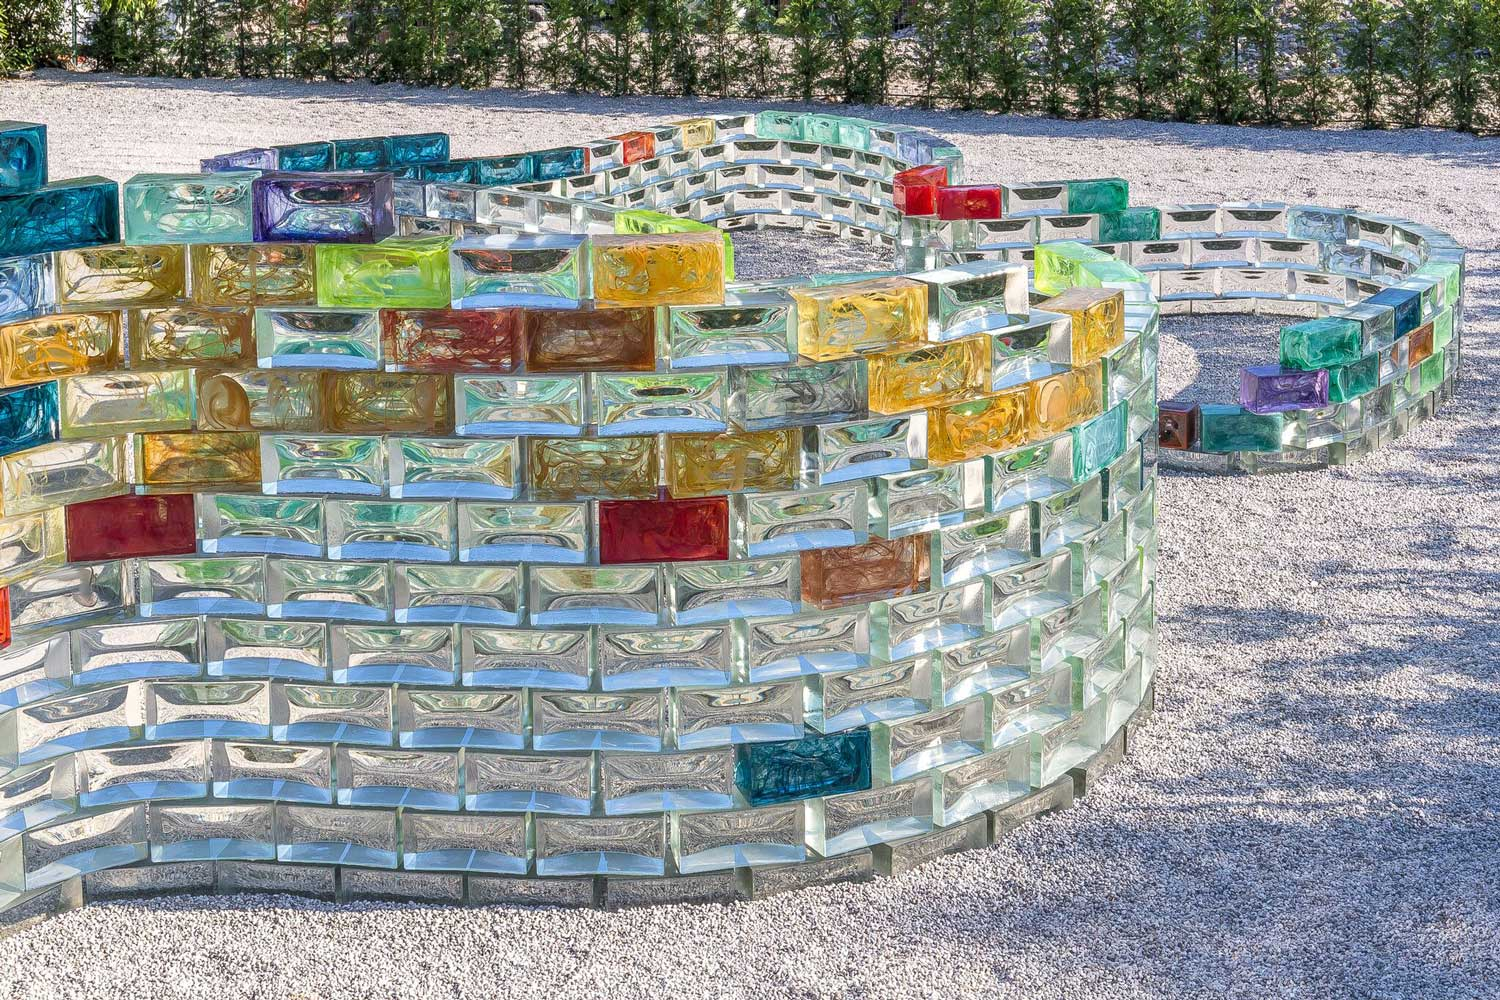 Pae White Curving Wall of Coloured Glass for Le Stanze del Vetro at Venice Biennale 2017   Yellowtrace